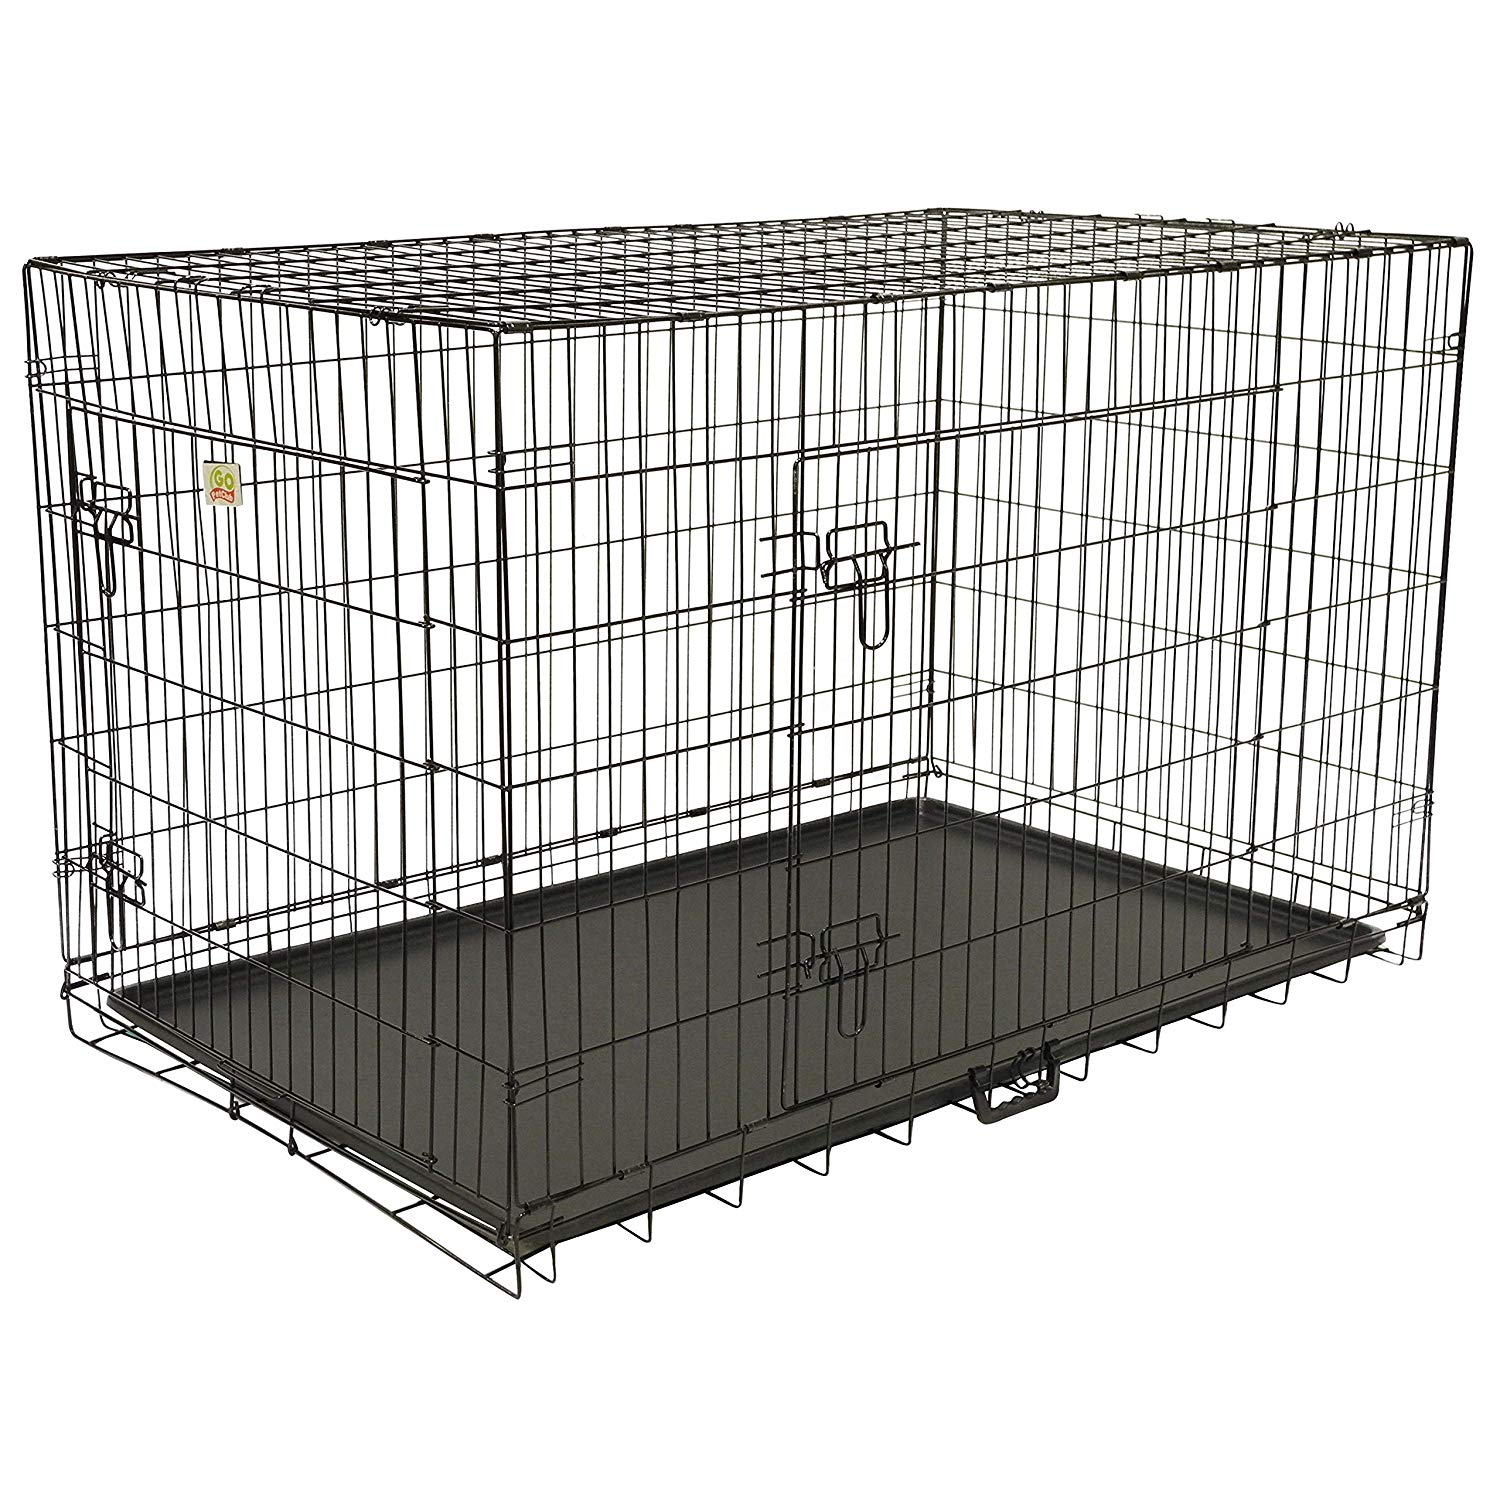 48 Inch Dog Crate 2 Doors Kennel Collapsible Dog Cage Large Dogs Double Doors Metal Divider Folding Portable Strong Black